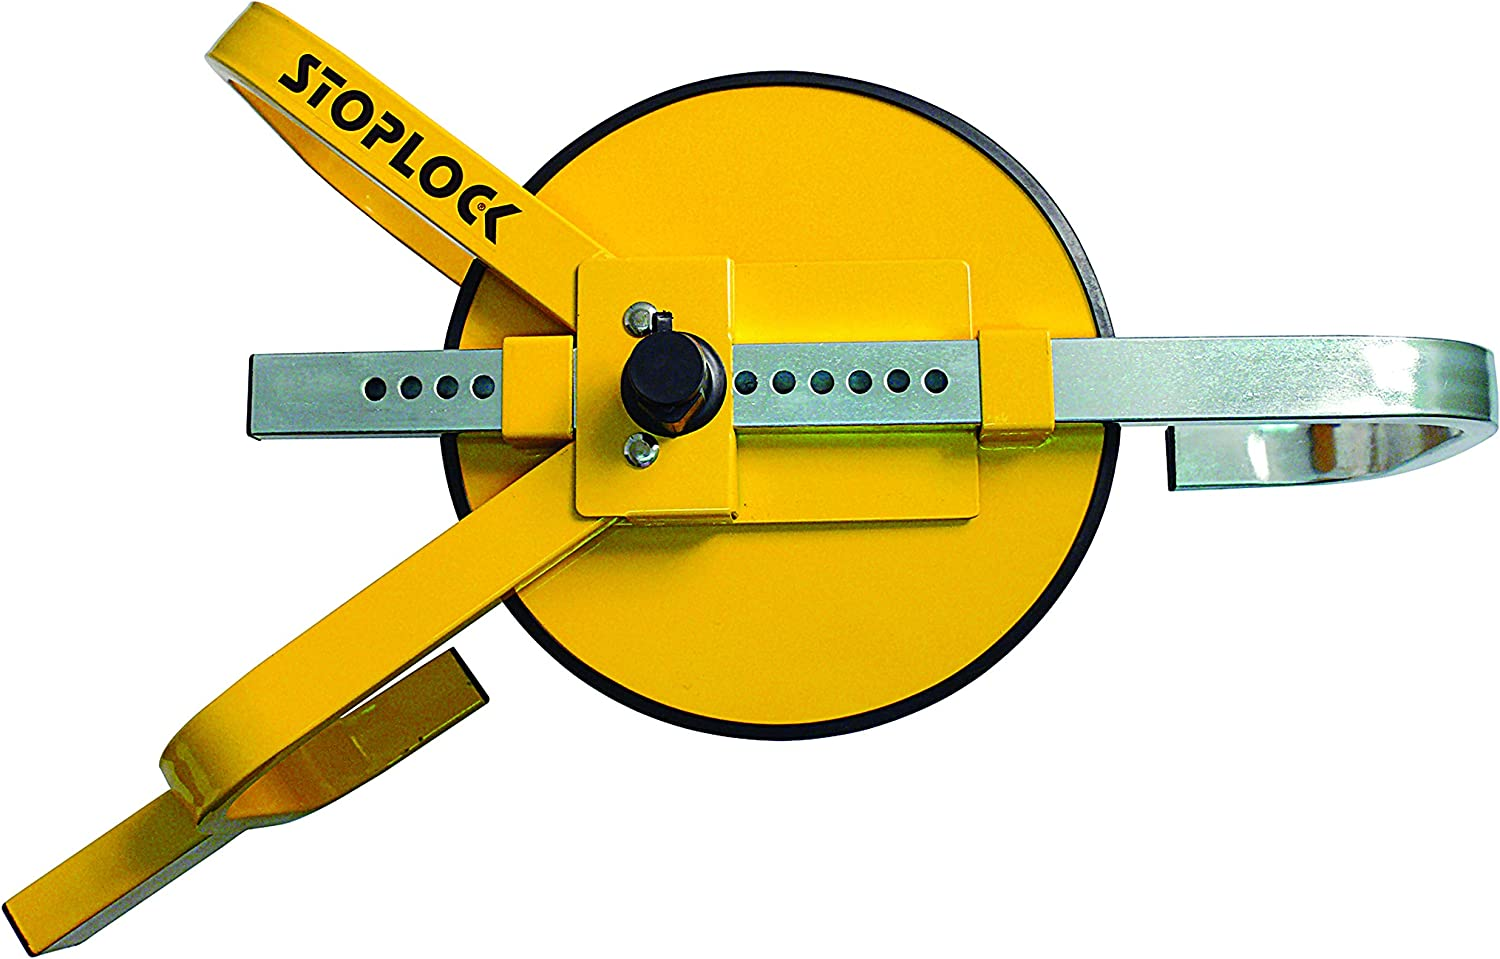 best trailer accessories -  A yellow wheel lock with a steel hook for clamping your trailer